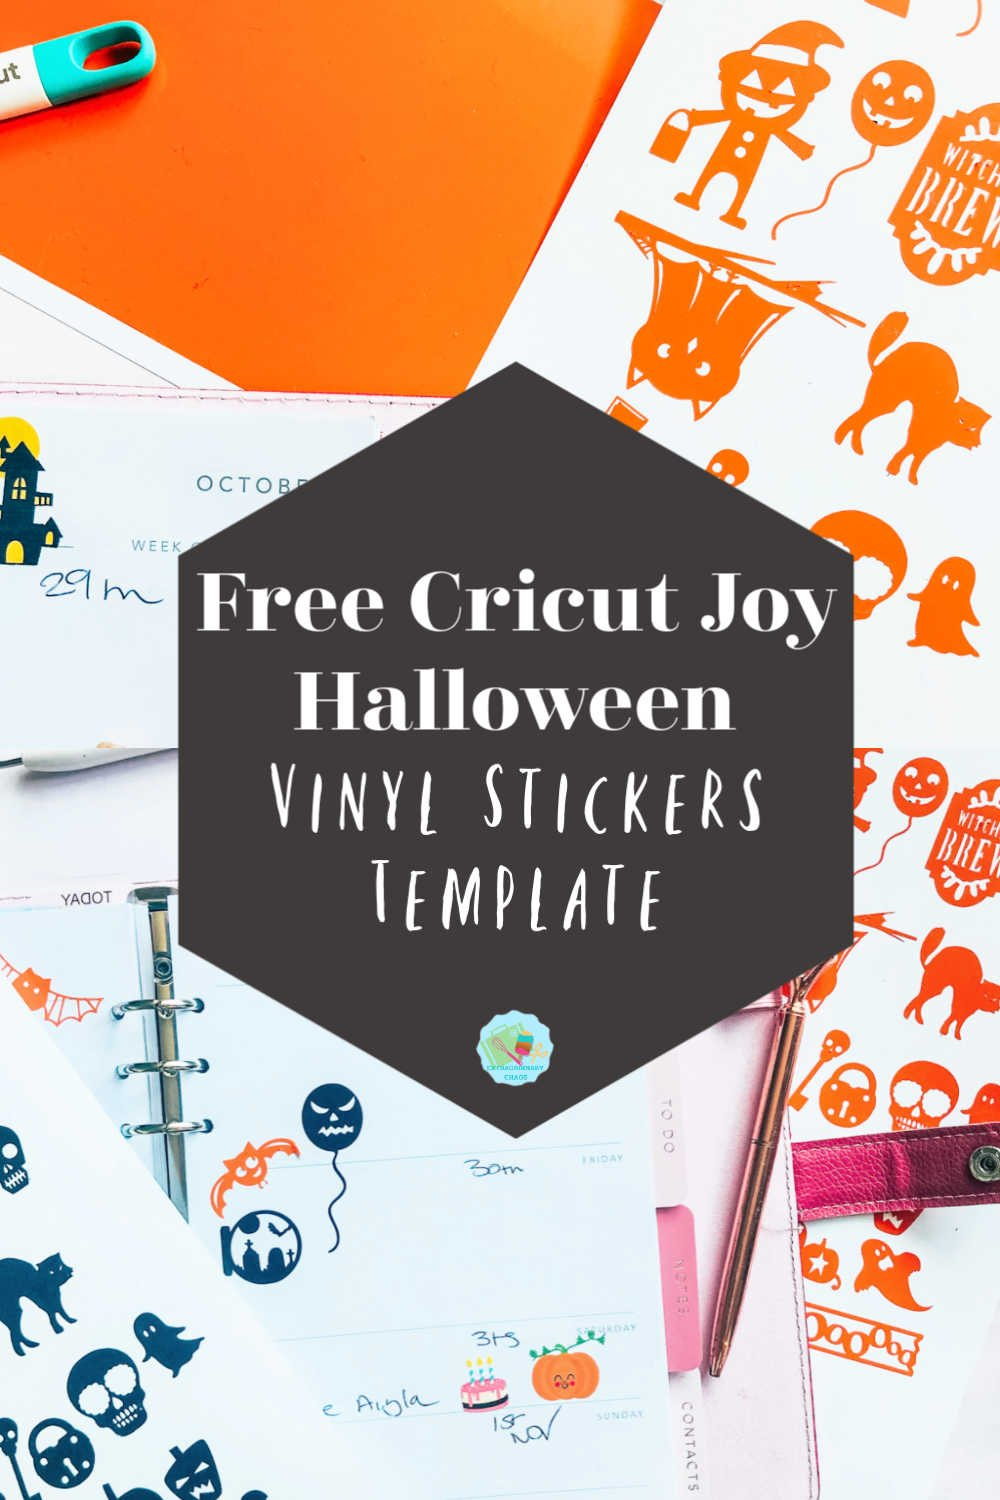 Free Cricut Joy Halloween Vinyl Stickers Template To Download and cut out, for trick or treating, Halloween Crafts and spooking planner stickers -2